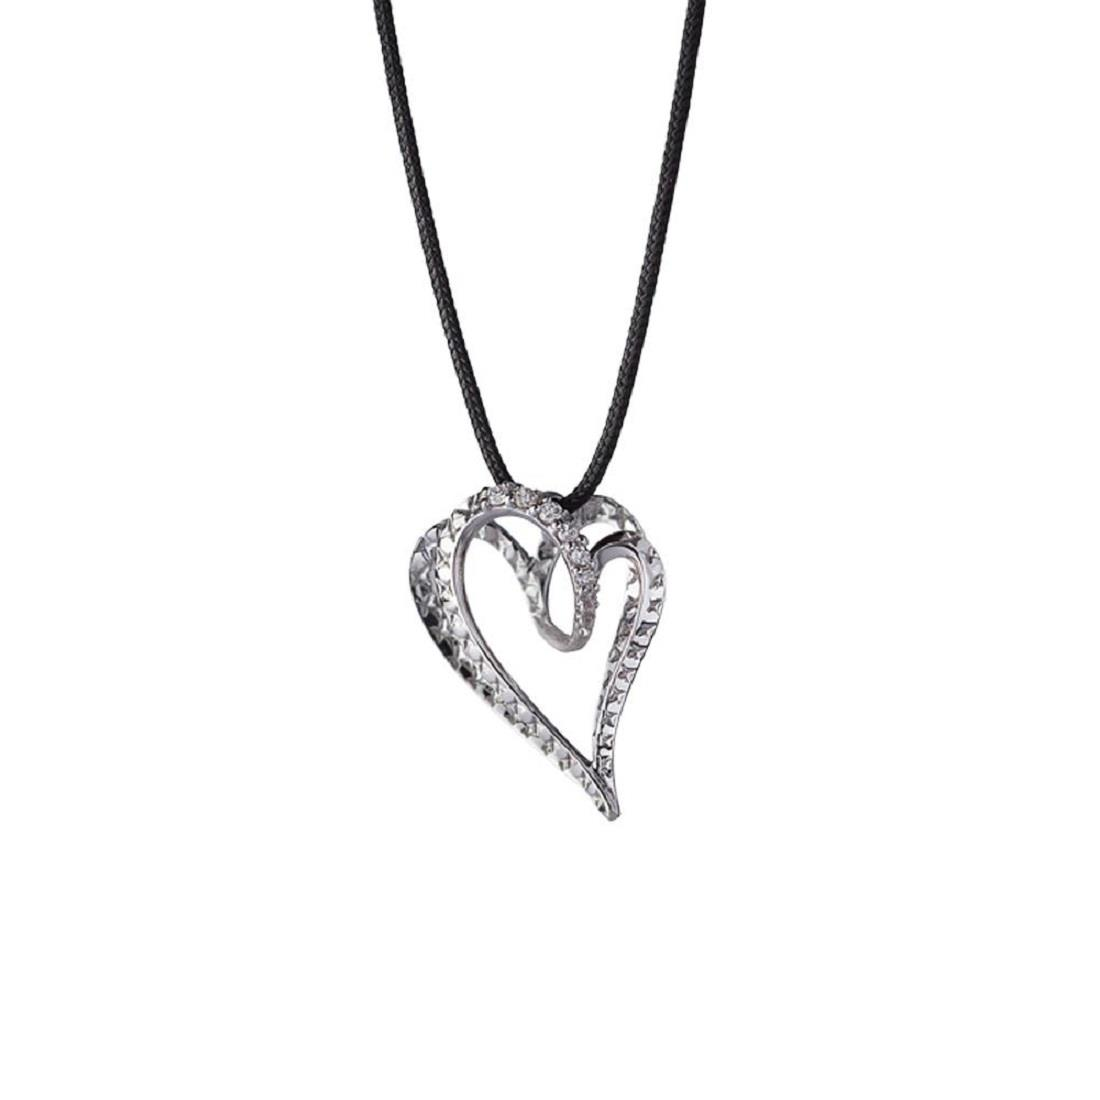 Small heart pendant in18 kt white gold with 0,04 ct diamonds with black string 